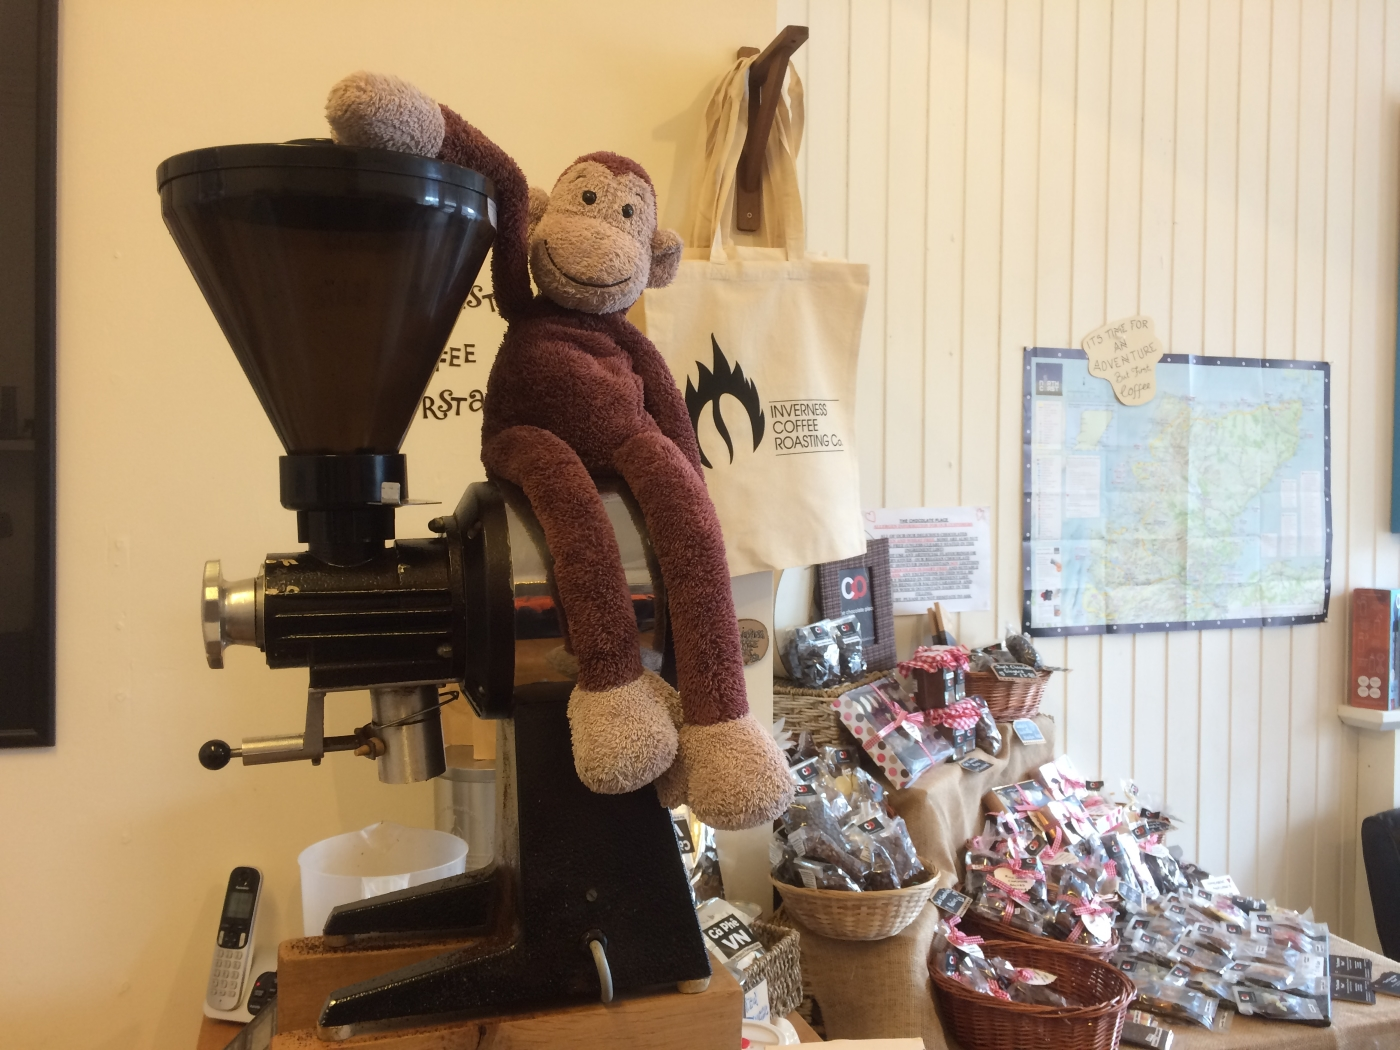 Inverness Coffee Roasting Co